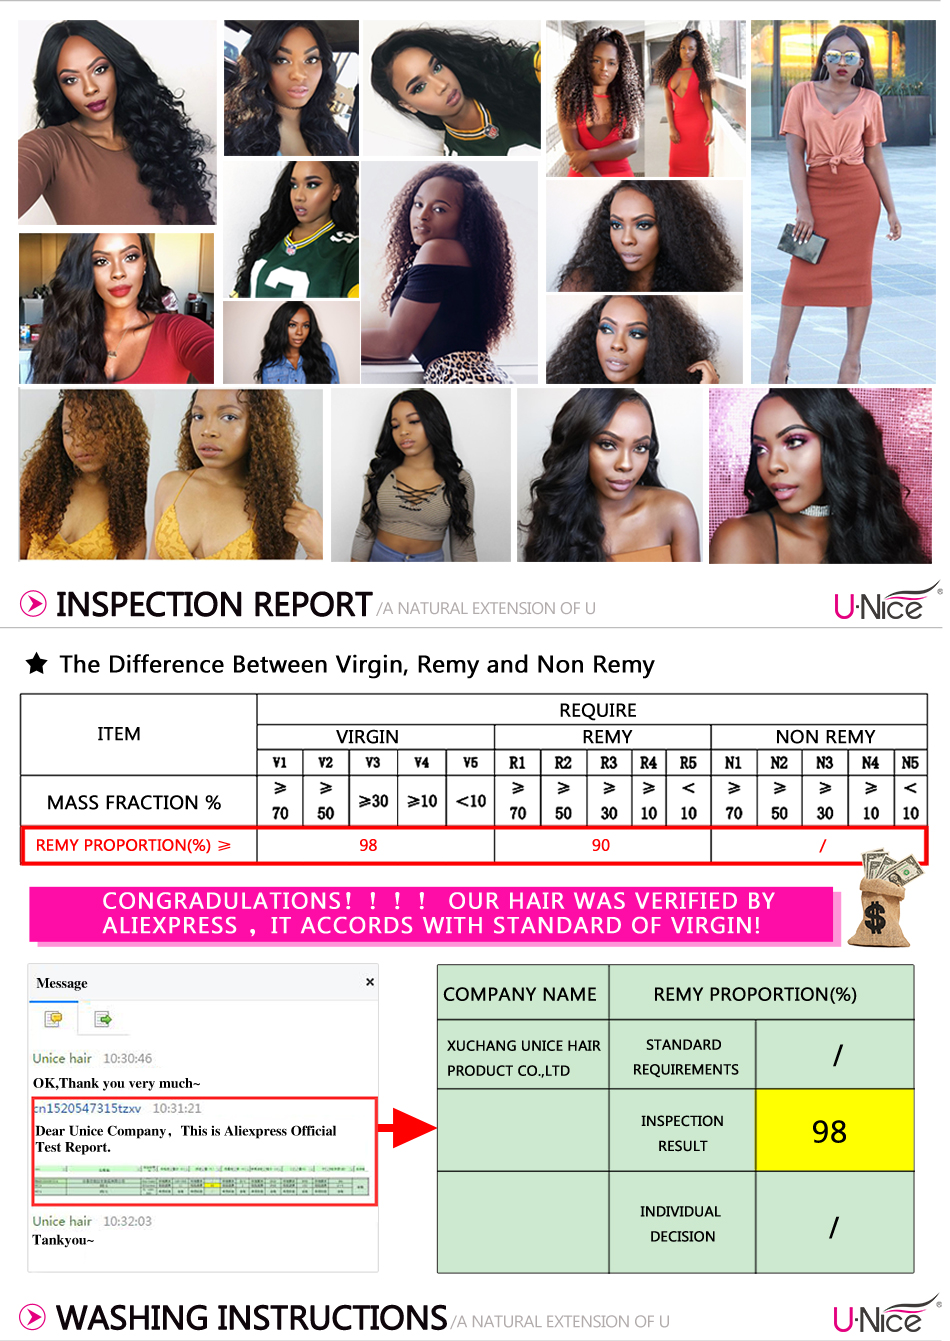 HTB1bvqHFXmWBuNjSspdq6zugXXan UNice Hair 13X4/6 Transparent Lace Wigs With Baby Hair Body Wave Invisible Lace Front Human Hair Wigs Pre-Plucked Lace Wigs